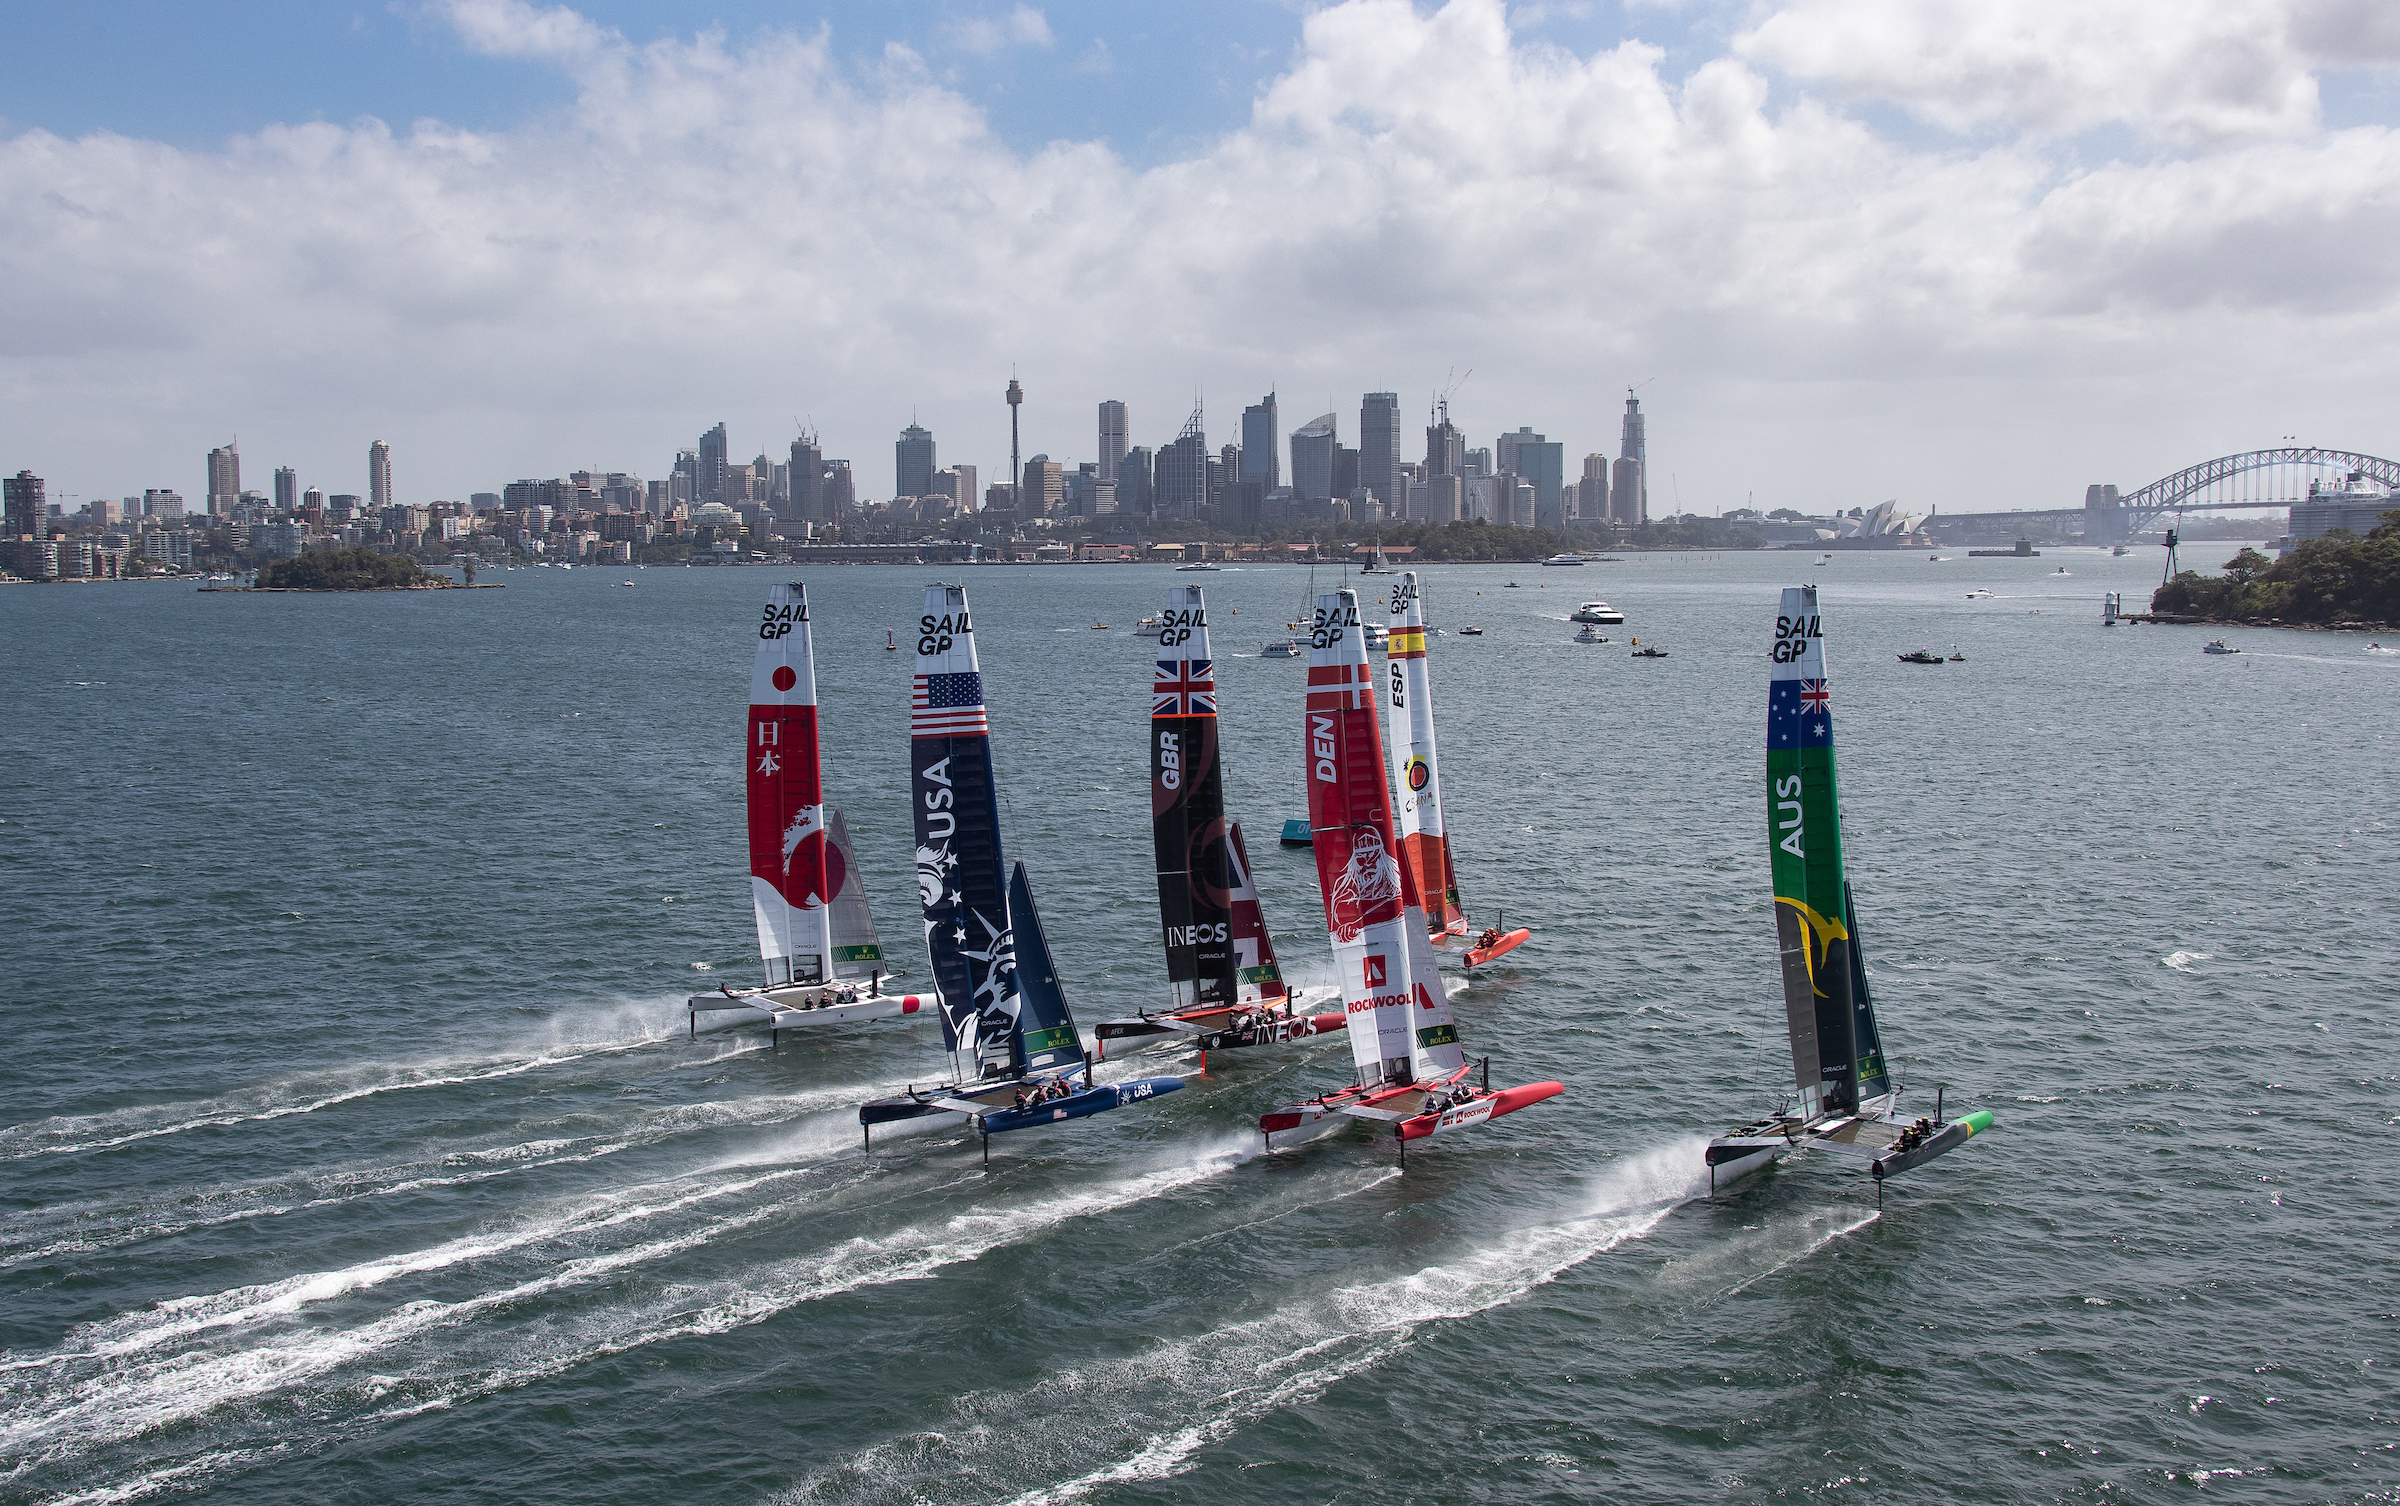 sntv partners with SailGP to provide global video distribution